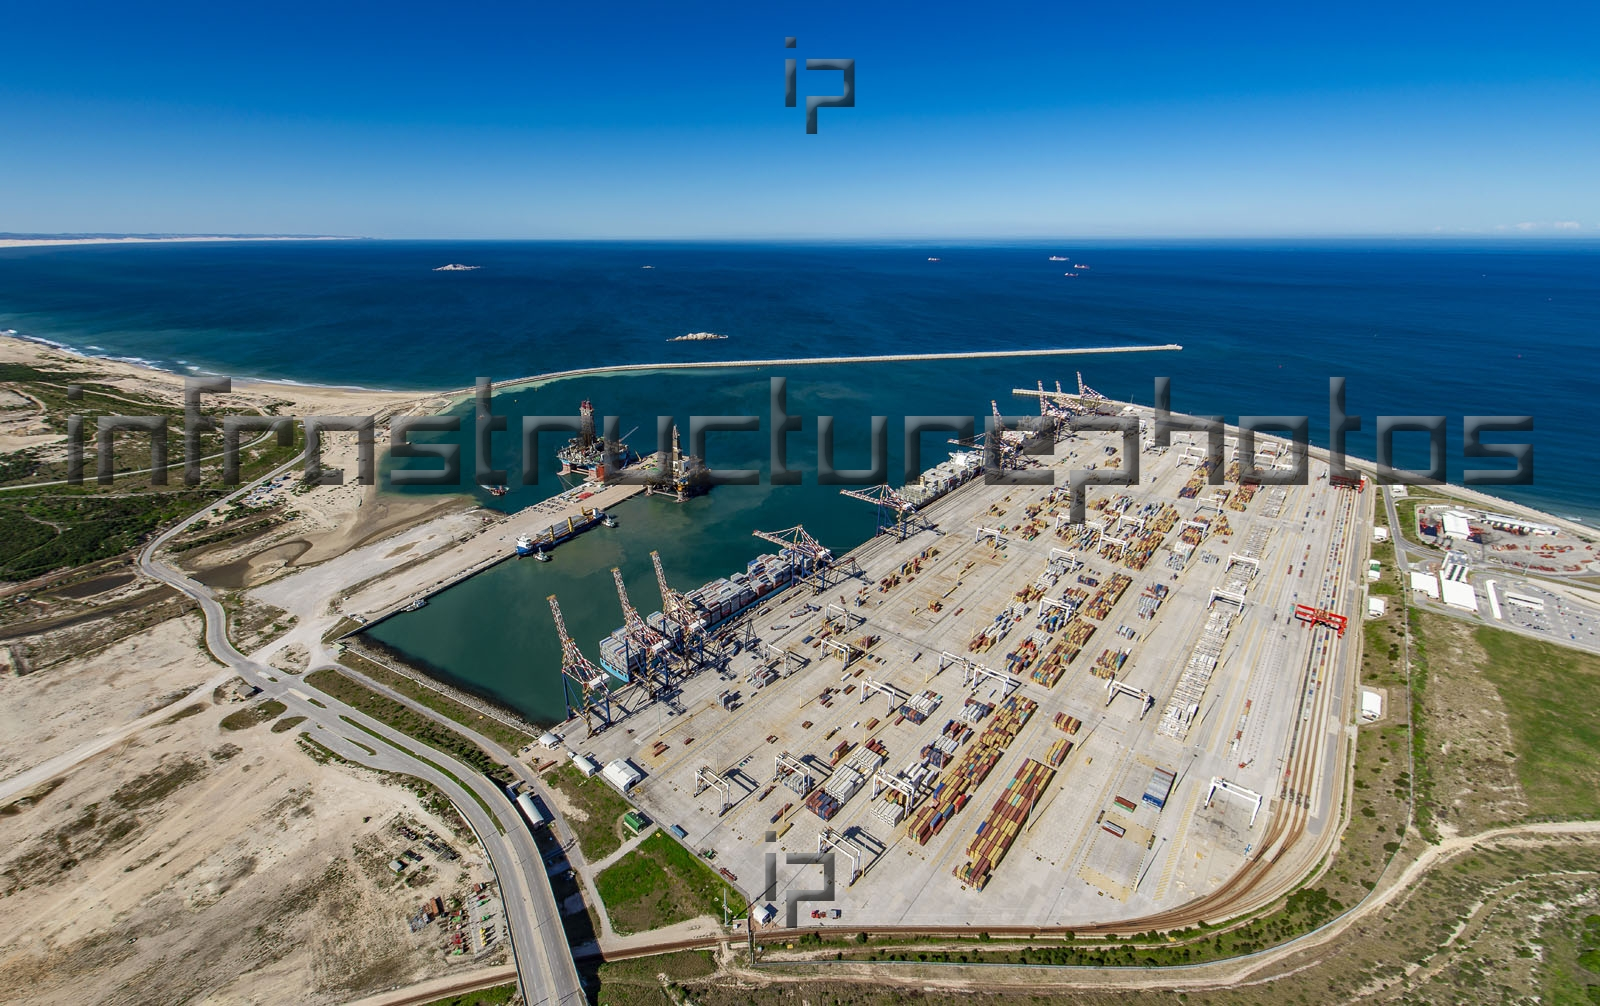 The Port of Ngqura